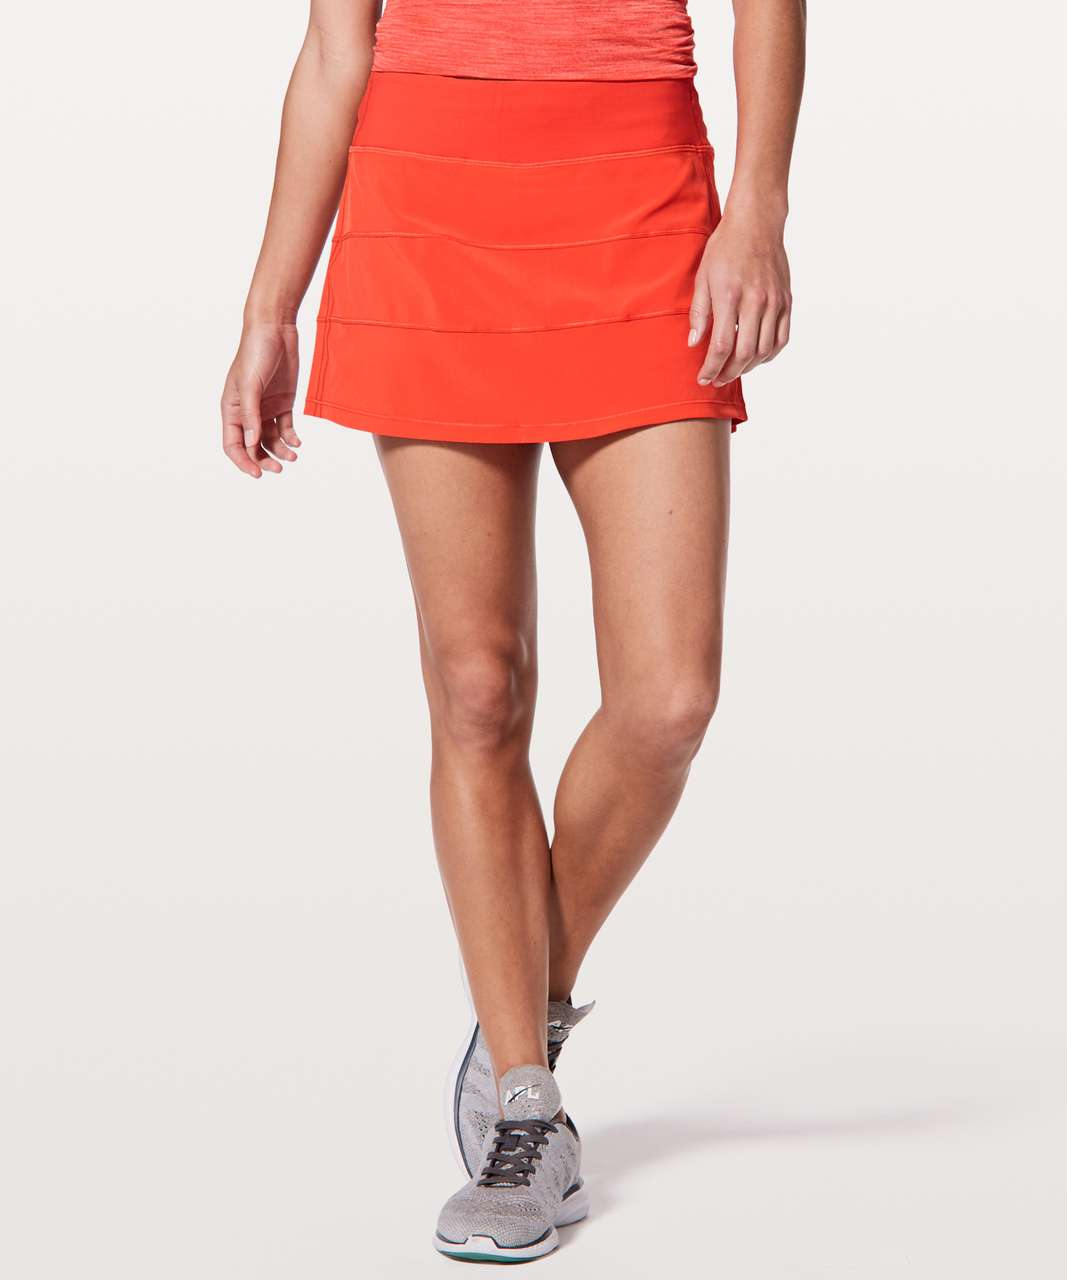 "Lululemon Pace Rival Skirt (Regular) *4-way Stretch 13"" - Red Orange"